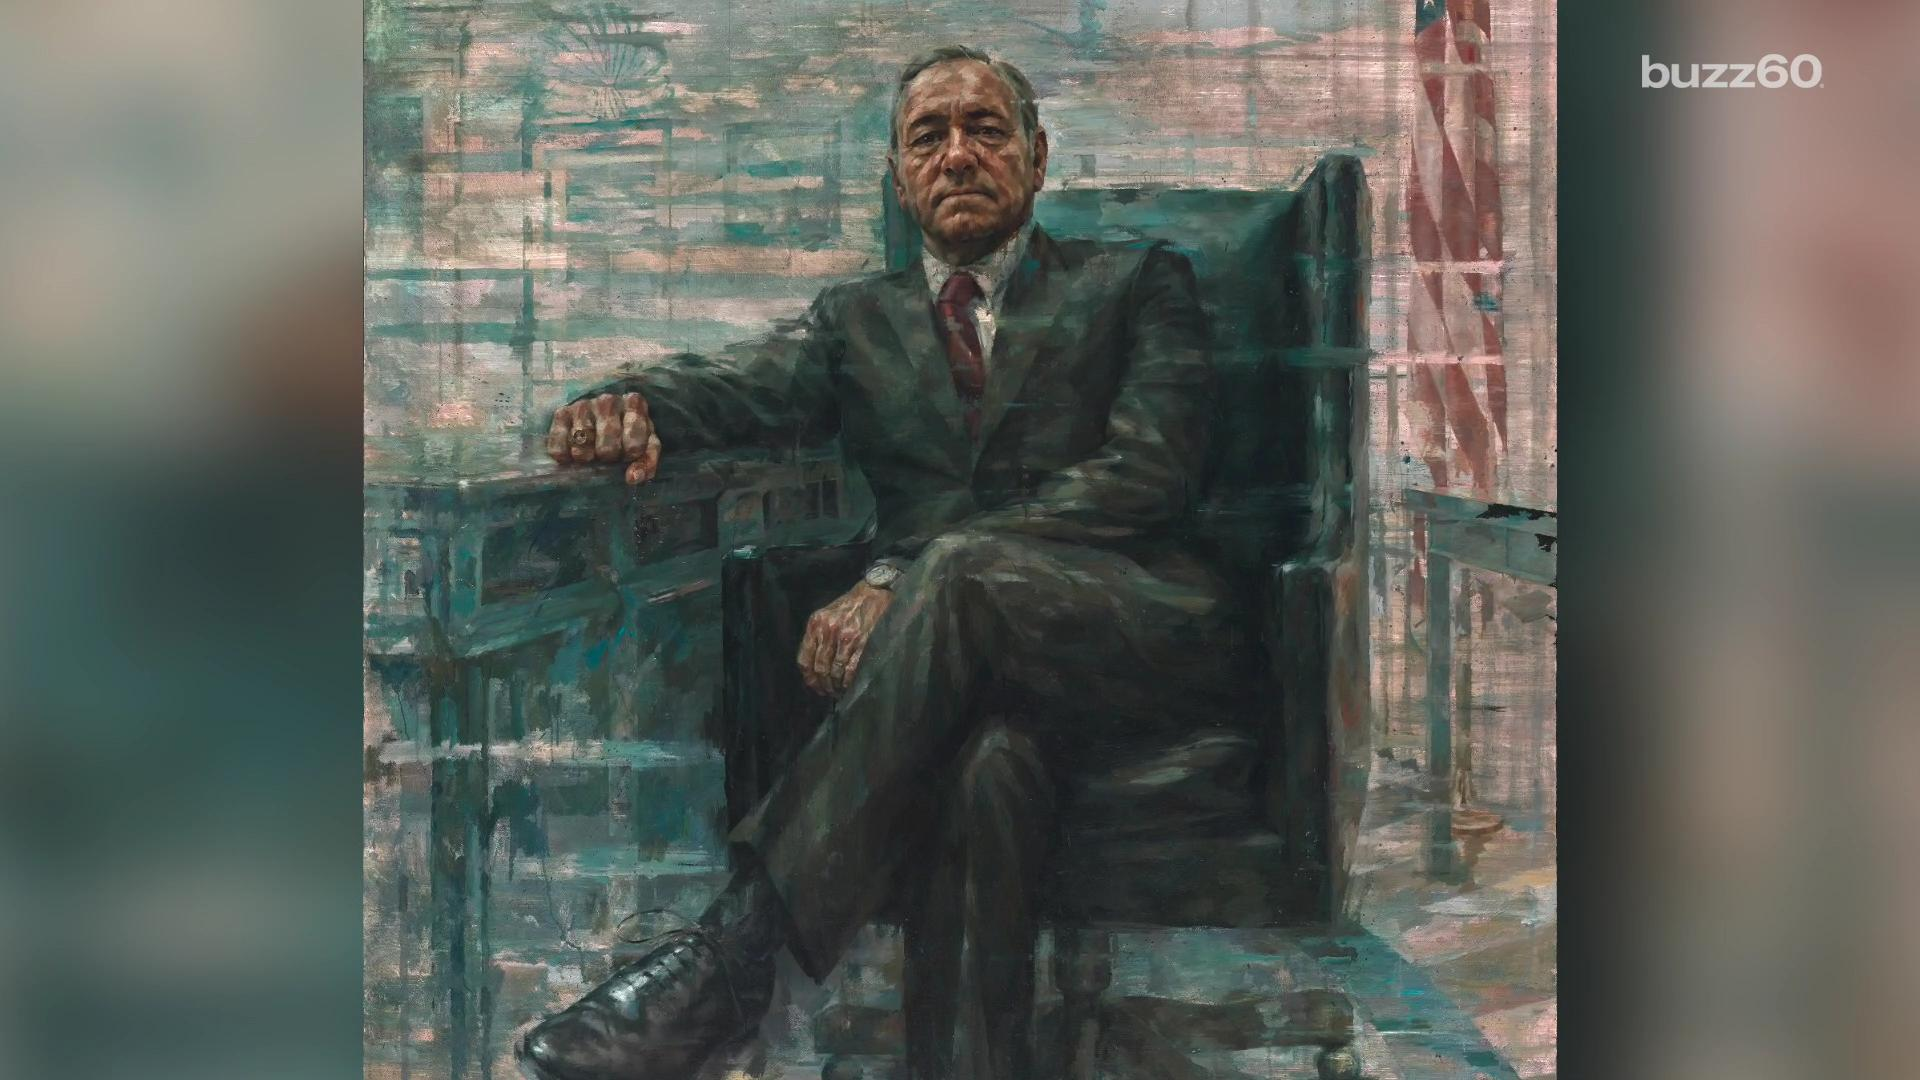 Kevin Spacey's 'House of Cards' character gets presidential treatment at National Portrait Gallery